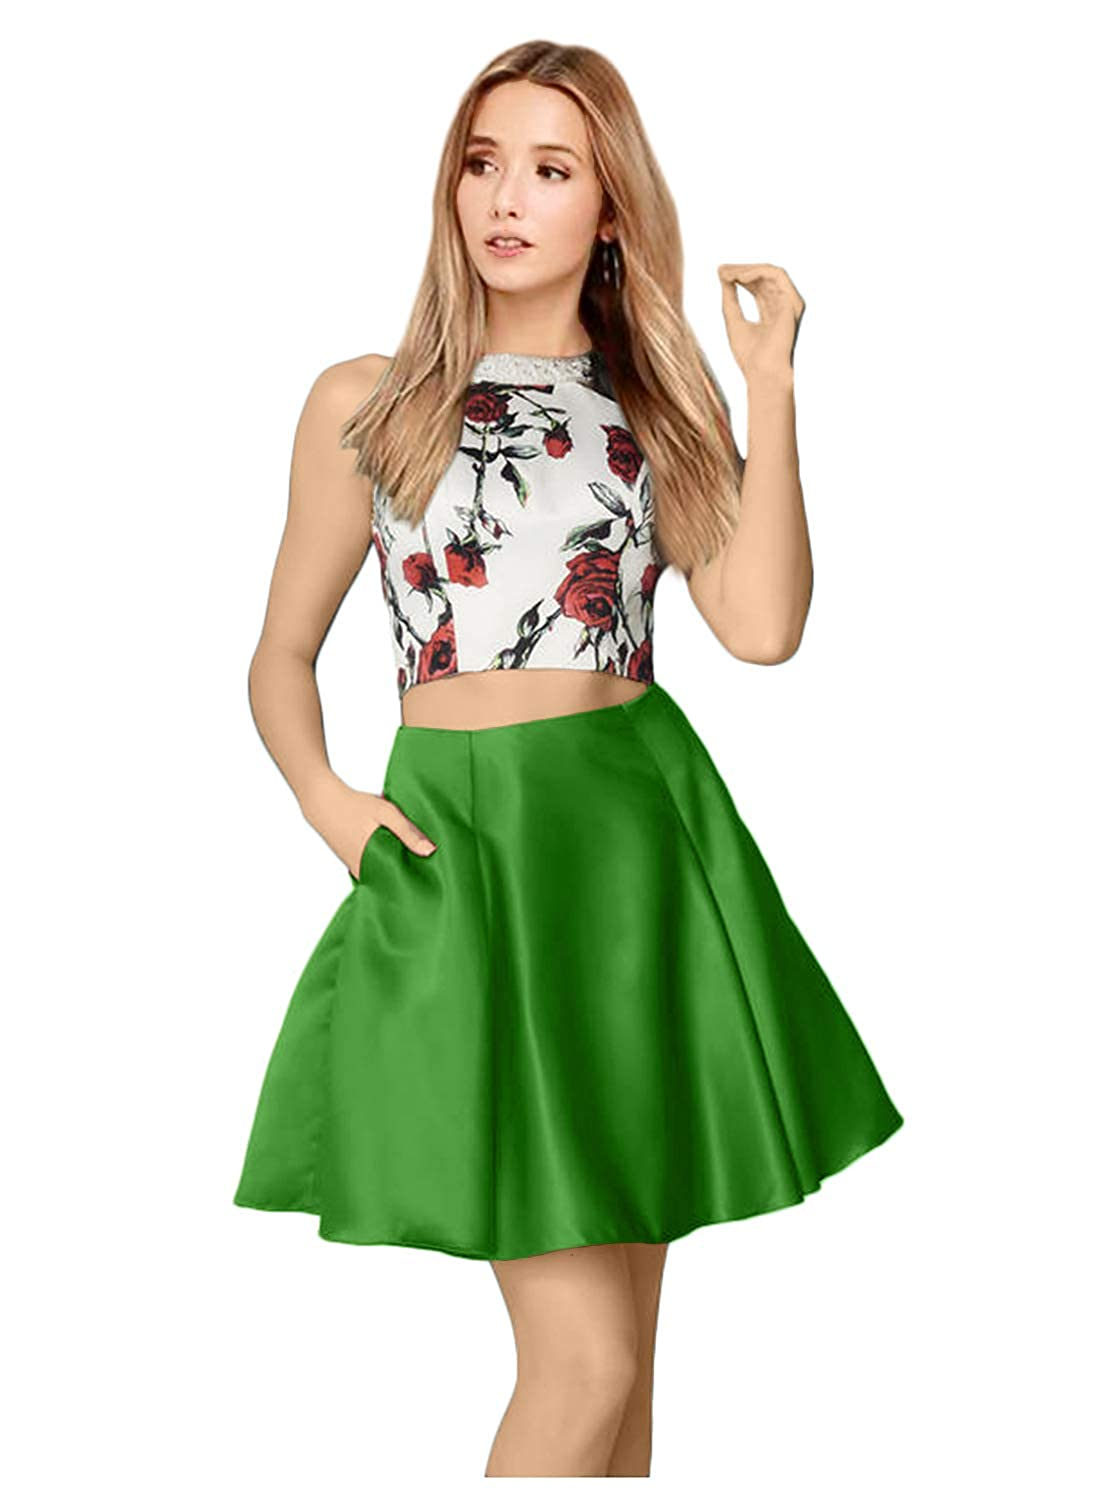 Monalia Womens Floral 2 Piece Short Homecoming Dress Prom Cocktail Evening Gown